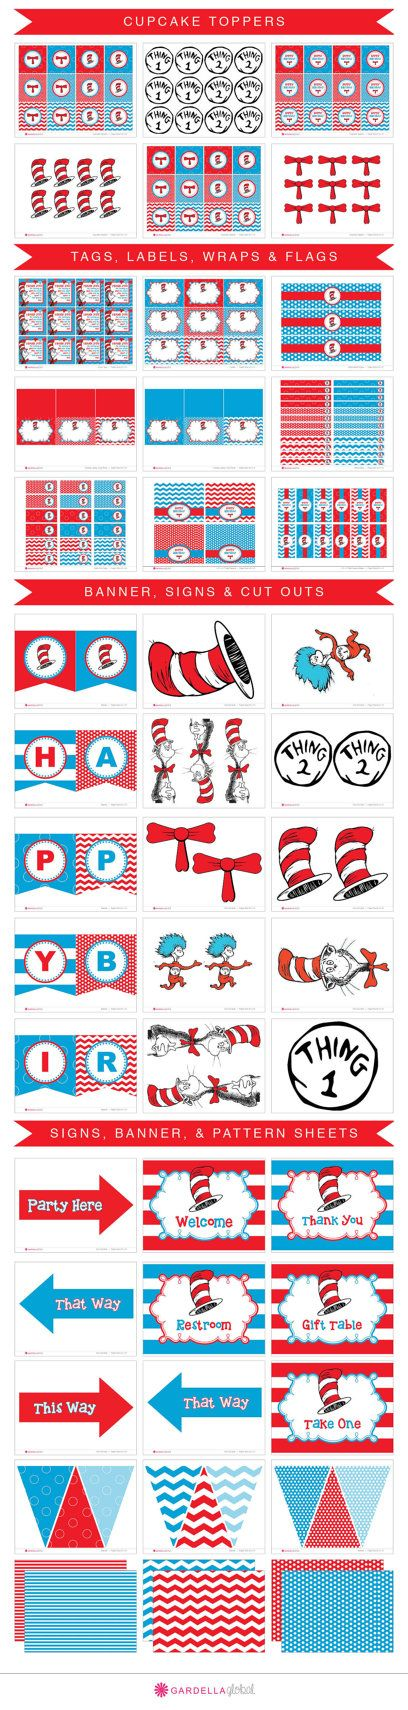 Cat In The Hat invitation Dr. Seuss invitation by GardellaGlobal